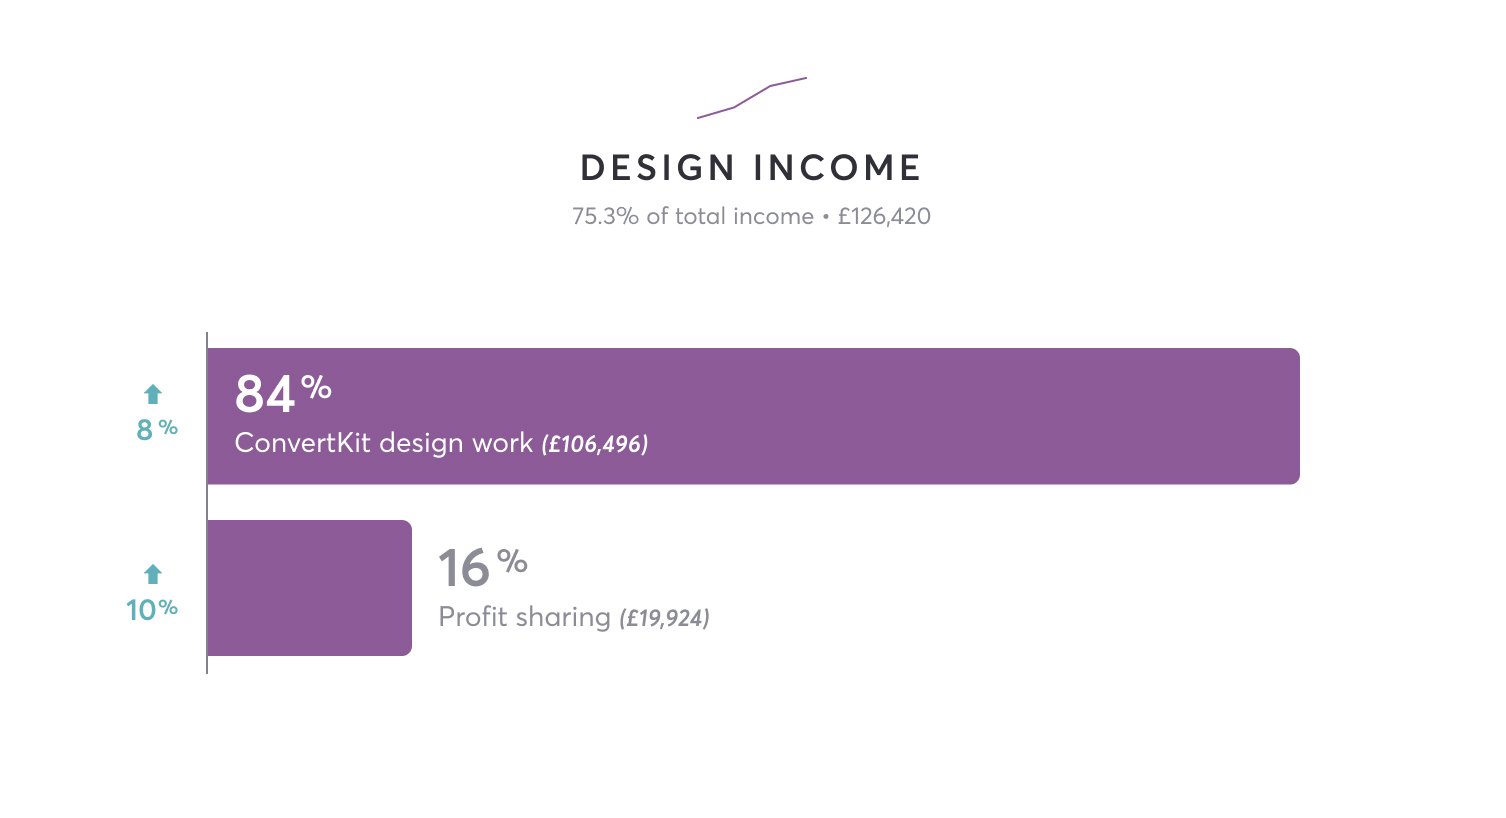 Design income is £126,420 total. 84% is ConvertKit design work at £106,496. 16% is profit sharing at £19,924.